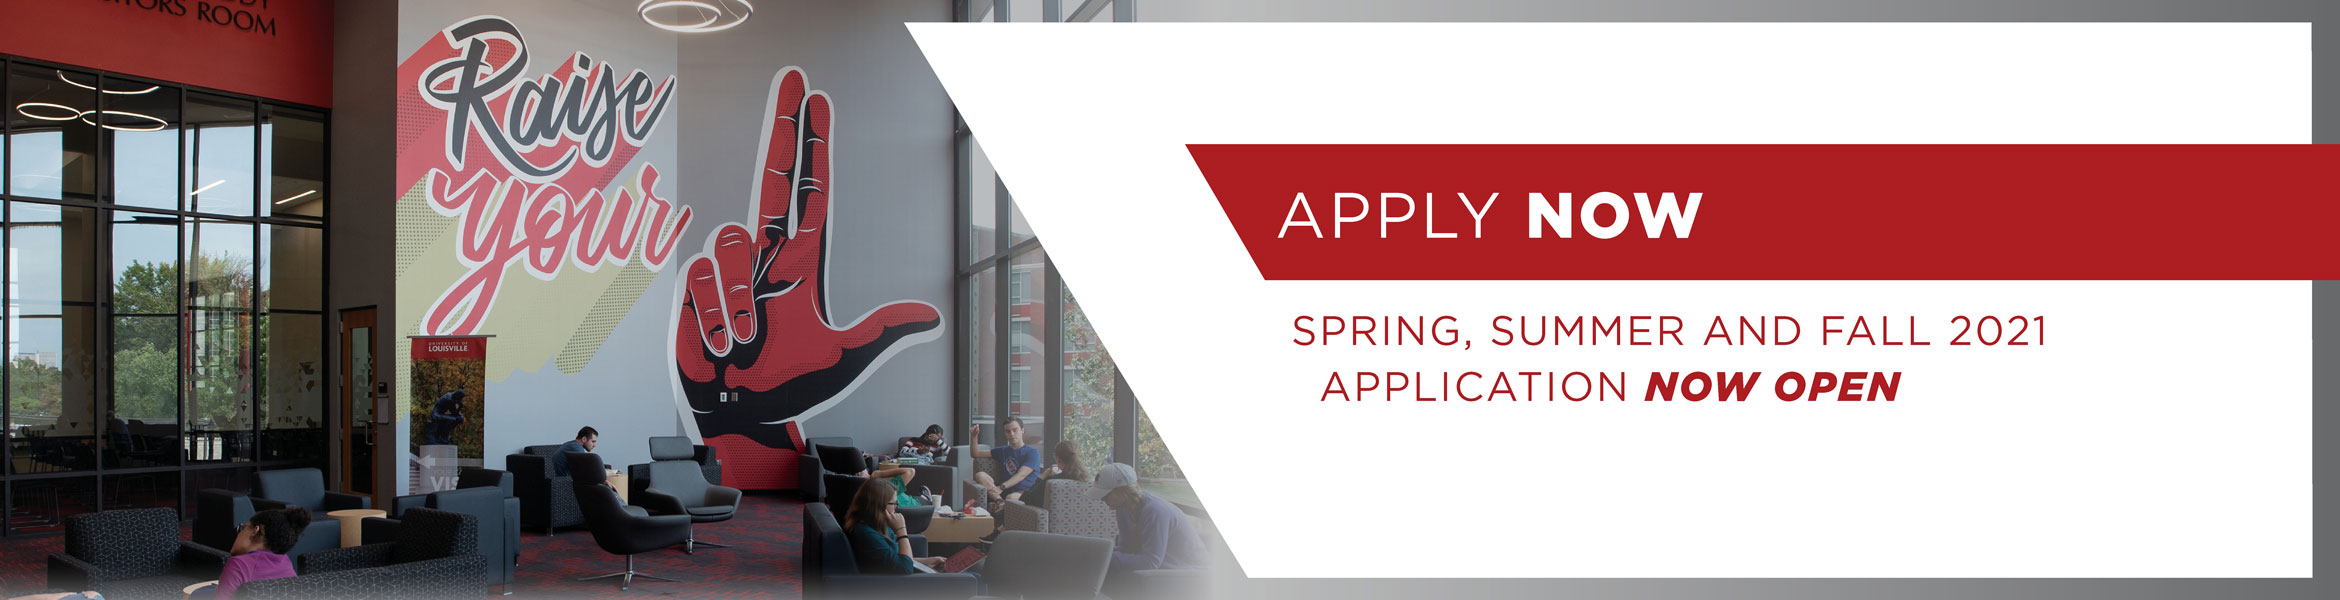 Apply Now: Spring, Summer and Fall 2021 Application Now Open